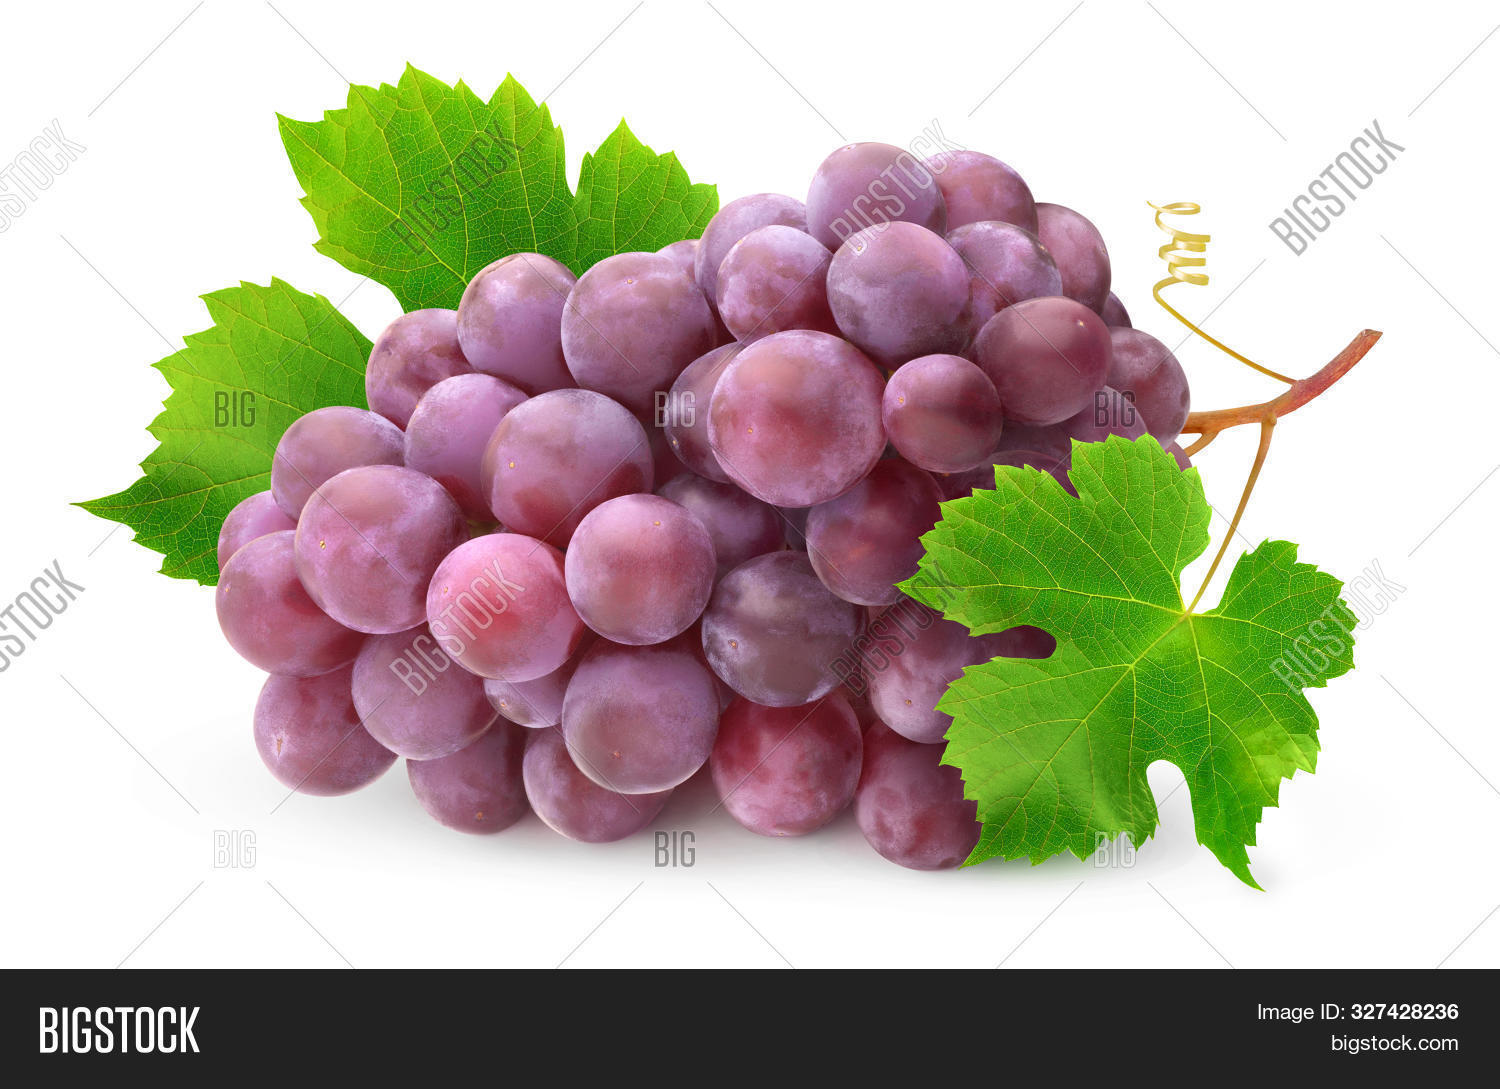 Isolated Grapes. Pile Of Red Grapes With Leaves And Stem Isolated On White Background With Clipping